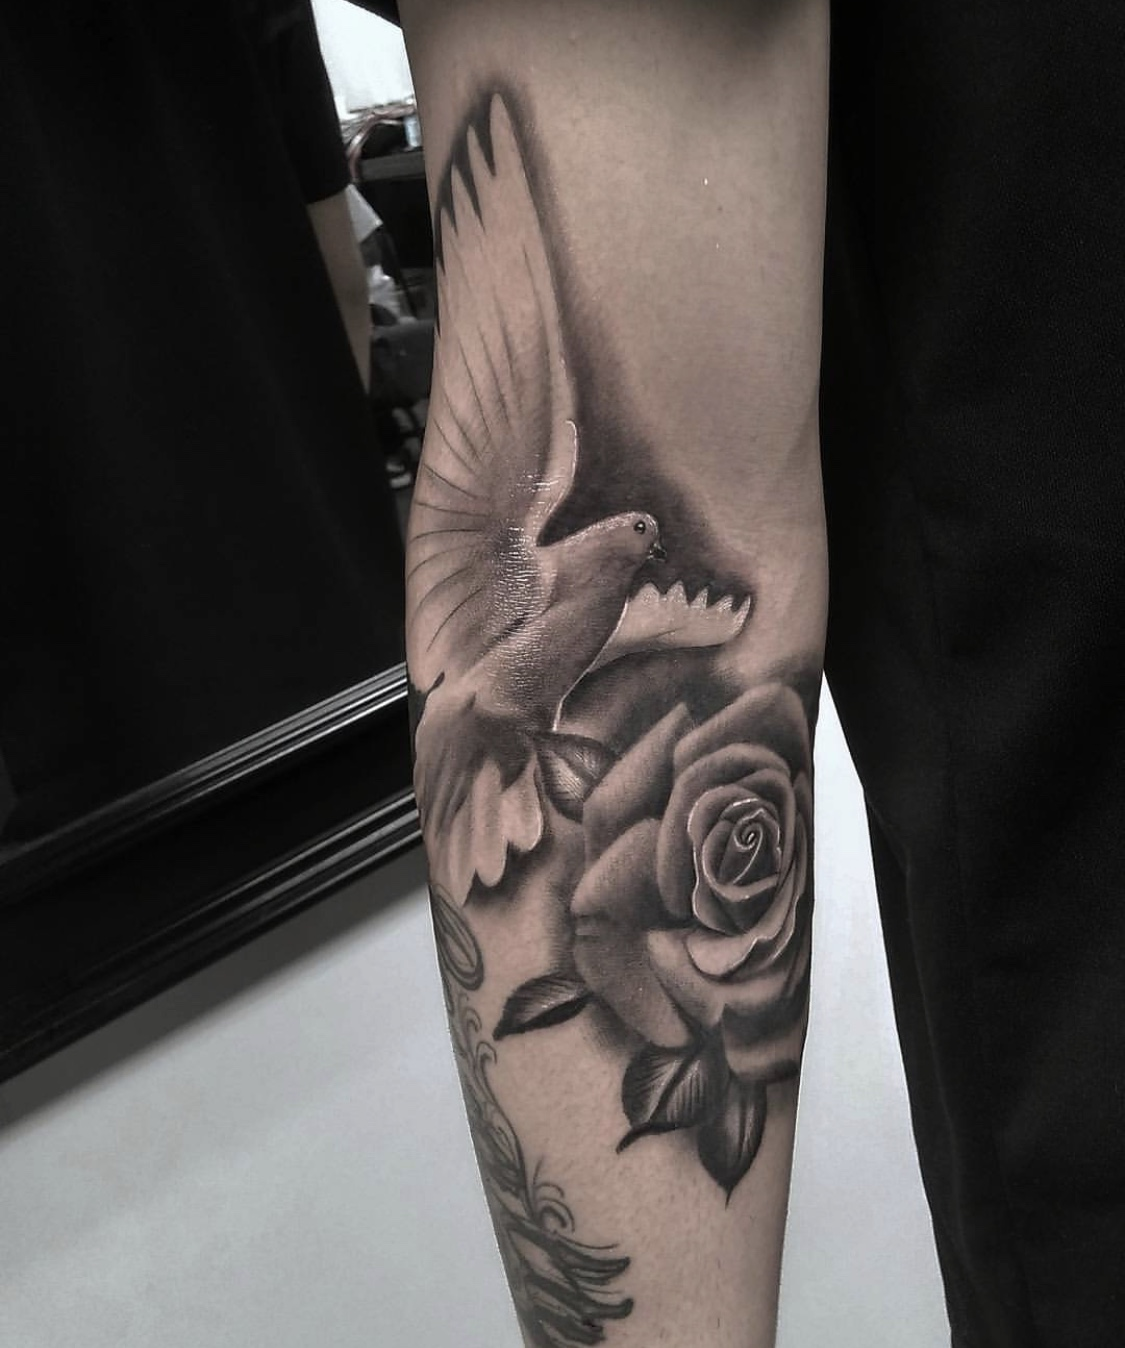 Black And White Dove With Rose Tattoo On Arm Entertainmentmesh